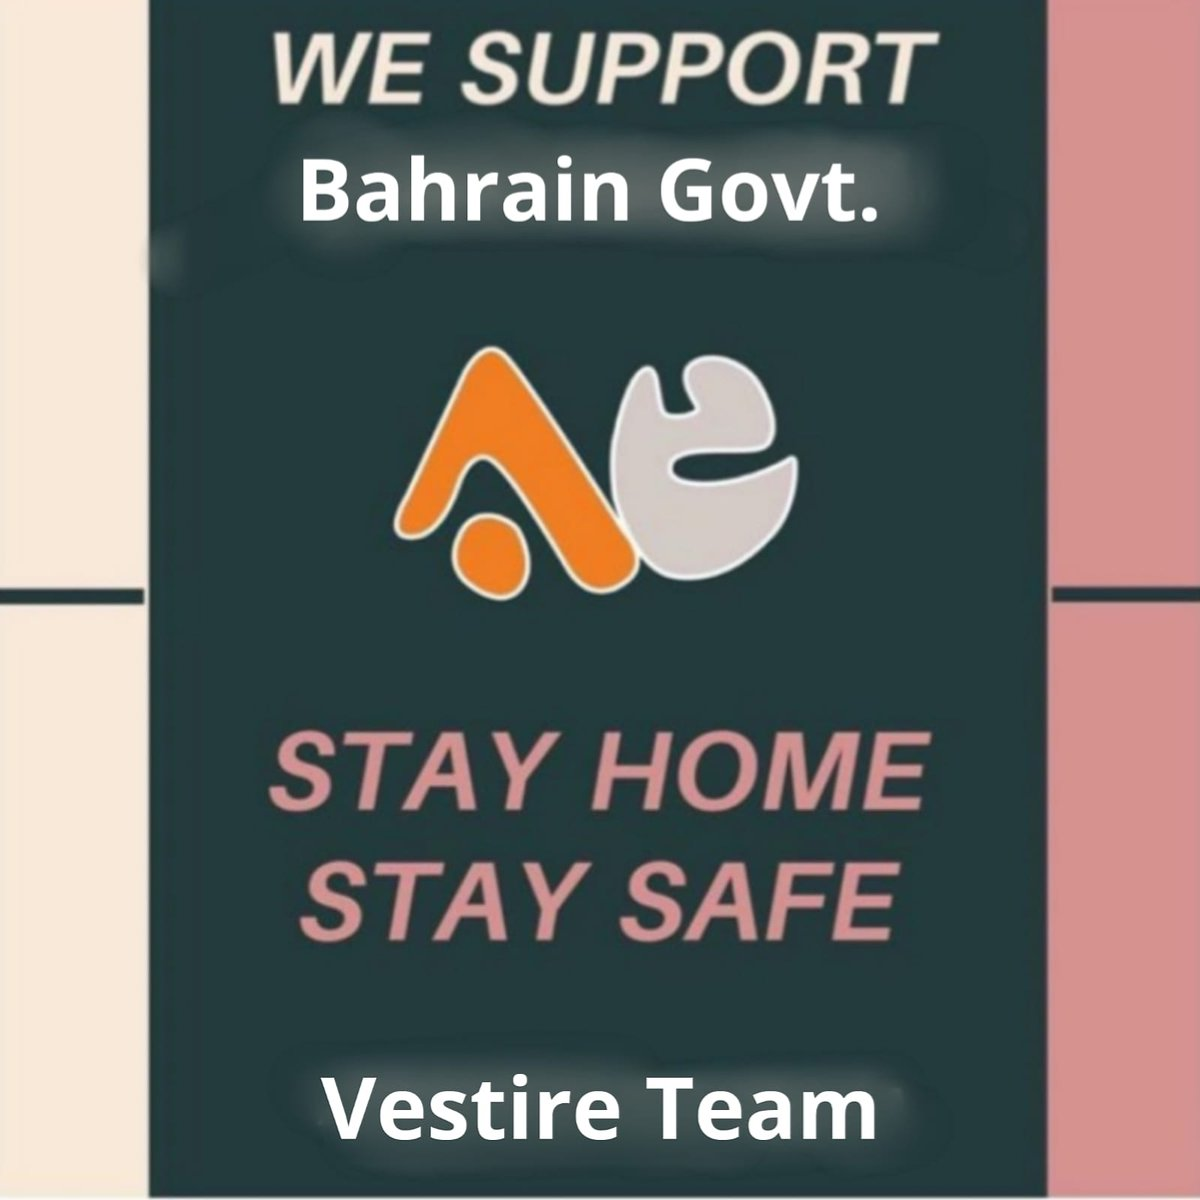 So stay home, stay safe, saves life.. Order line Through our website We do free delivery to your homes https://vestirebh.com/shop/  . .#الحياة الفاخرة#نمط الحياة الفاخرة #متعددة العلامات التجارية#designerwear #bahrainfashion #bahraingirl  ملونة #instadaily #antiquejewelry #fusionwear pic.twitter.com/ACTNwHhKjJ